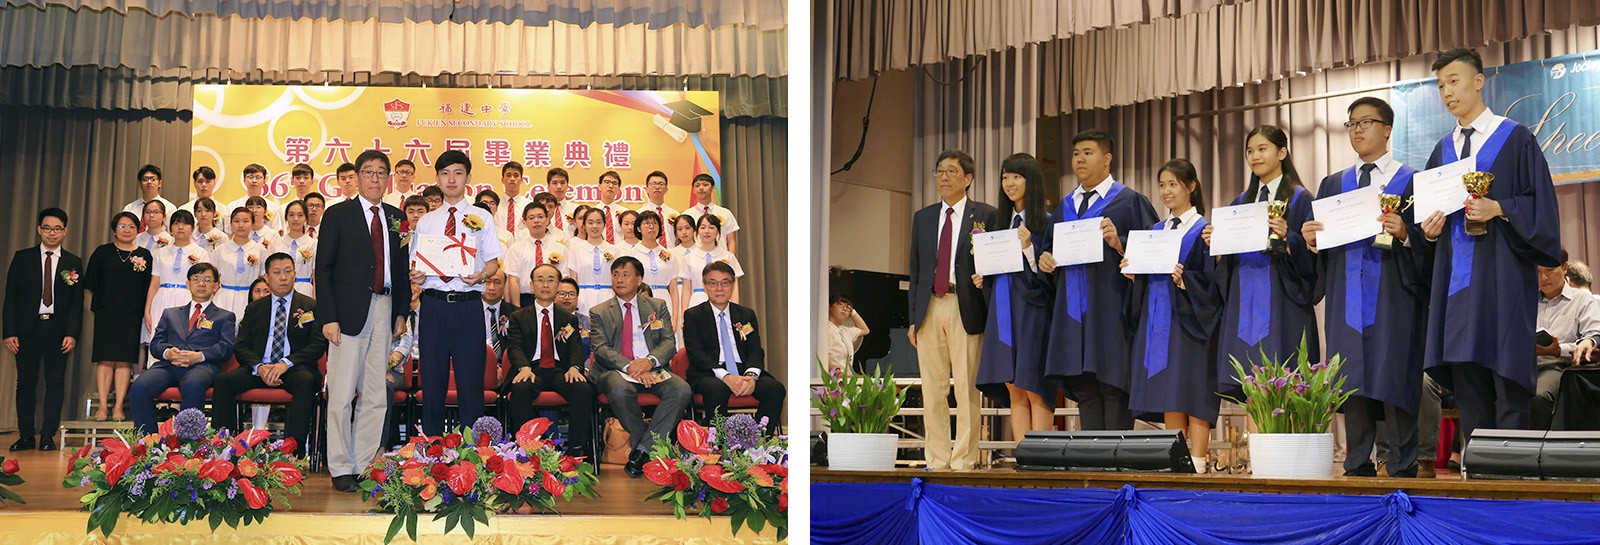 Professor Kuo presents certificates to graduates.